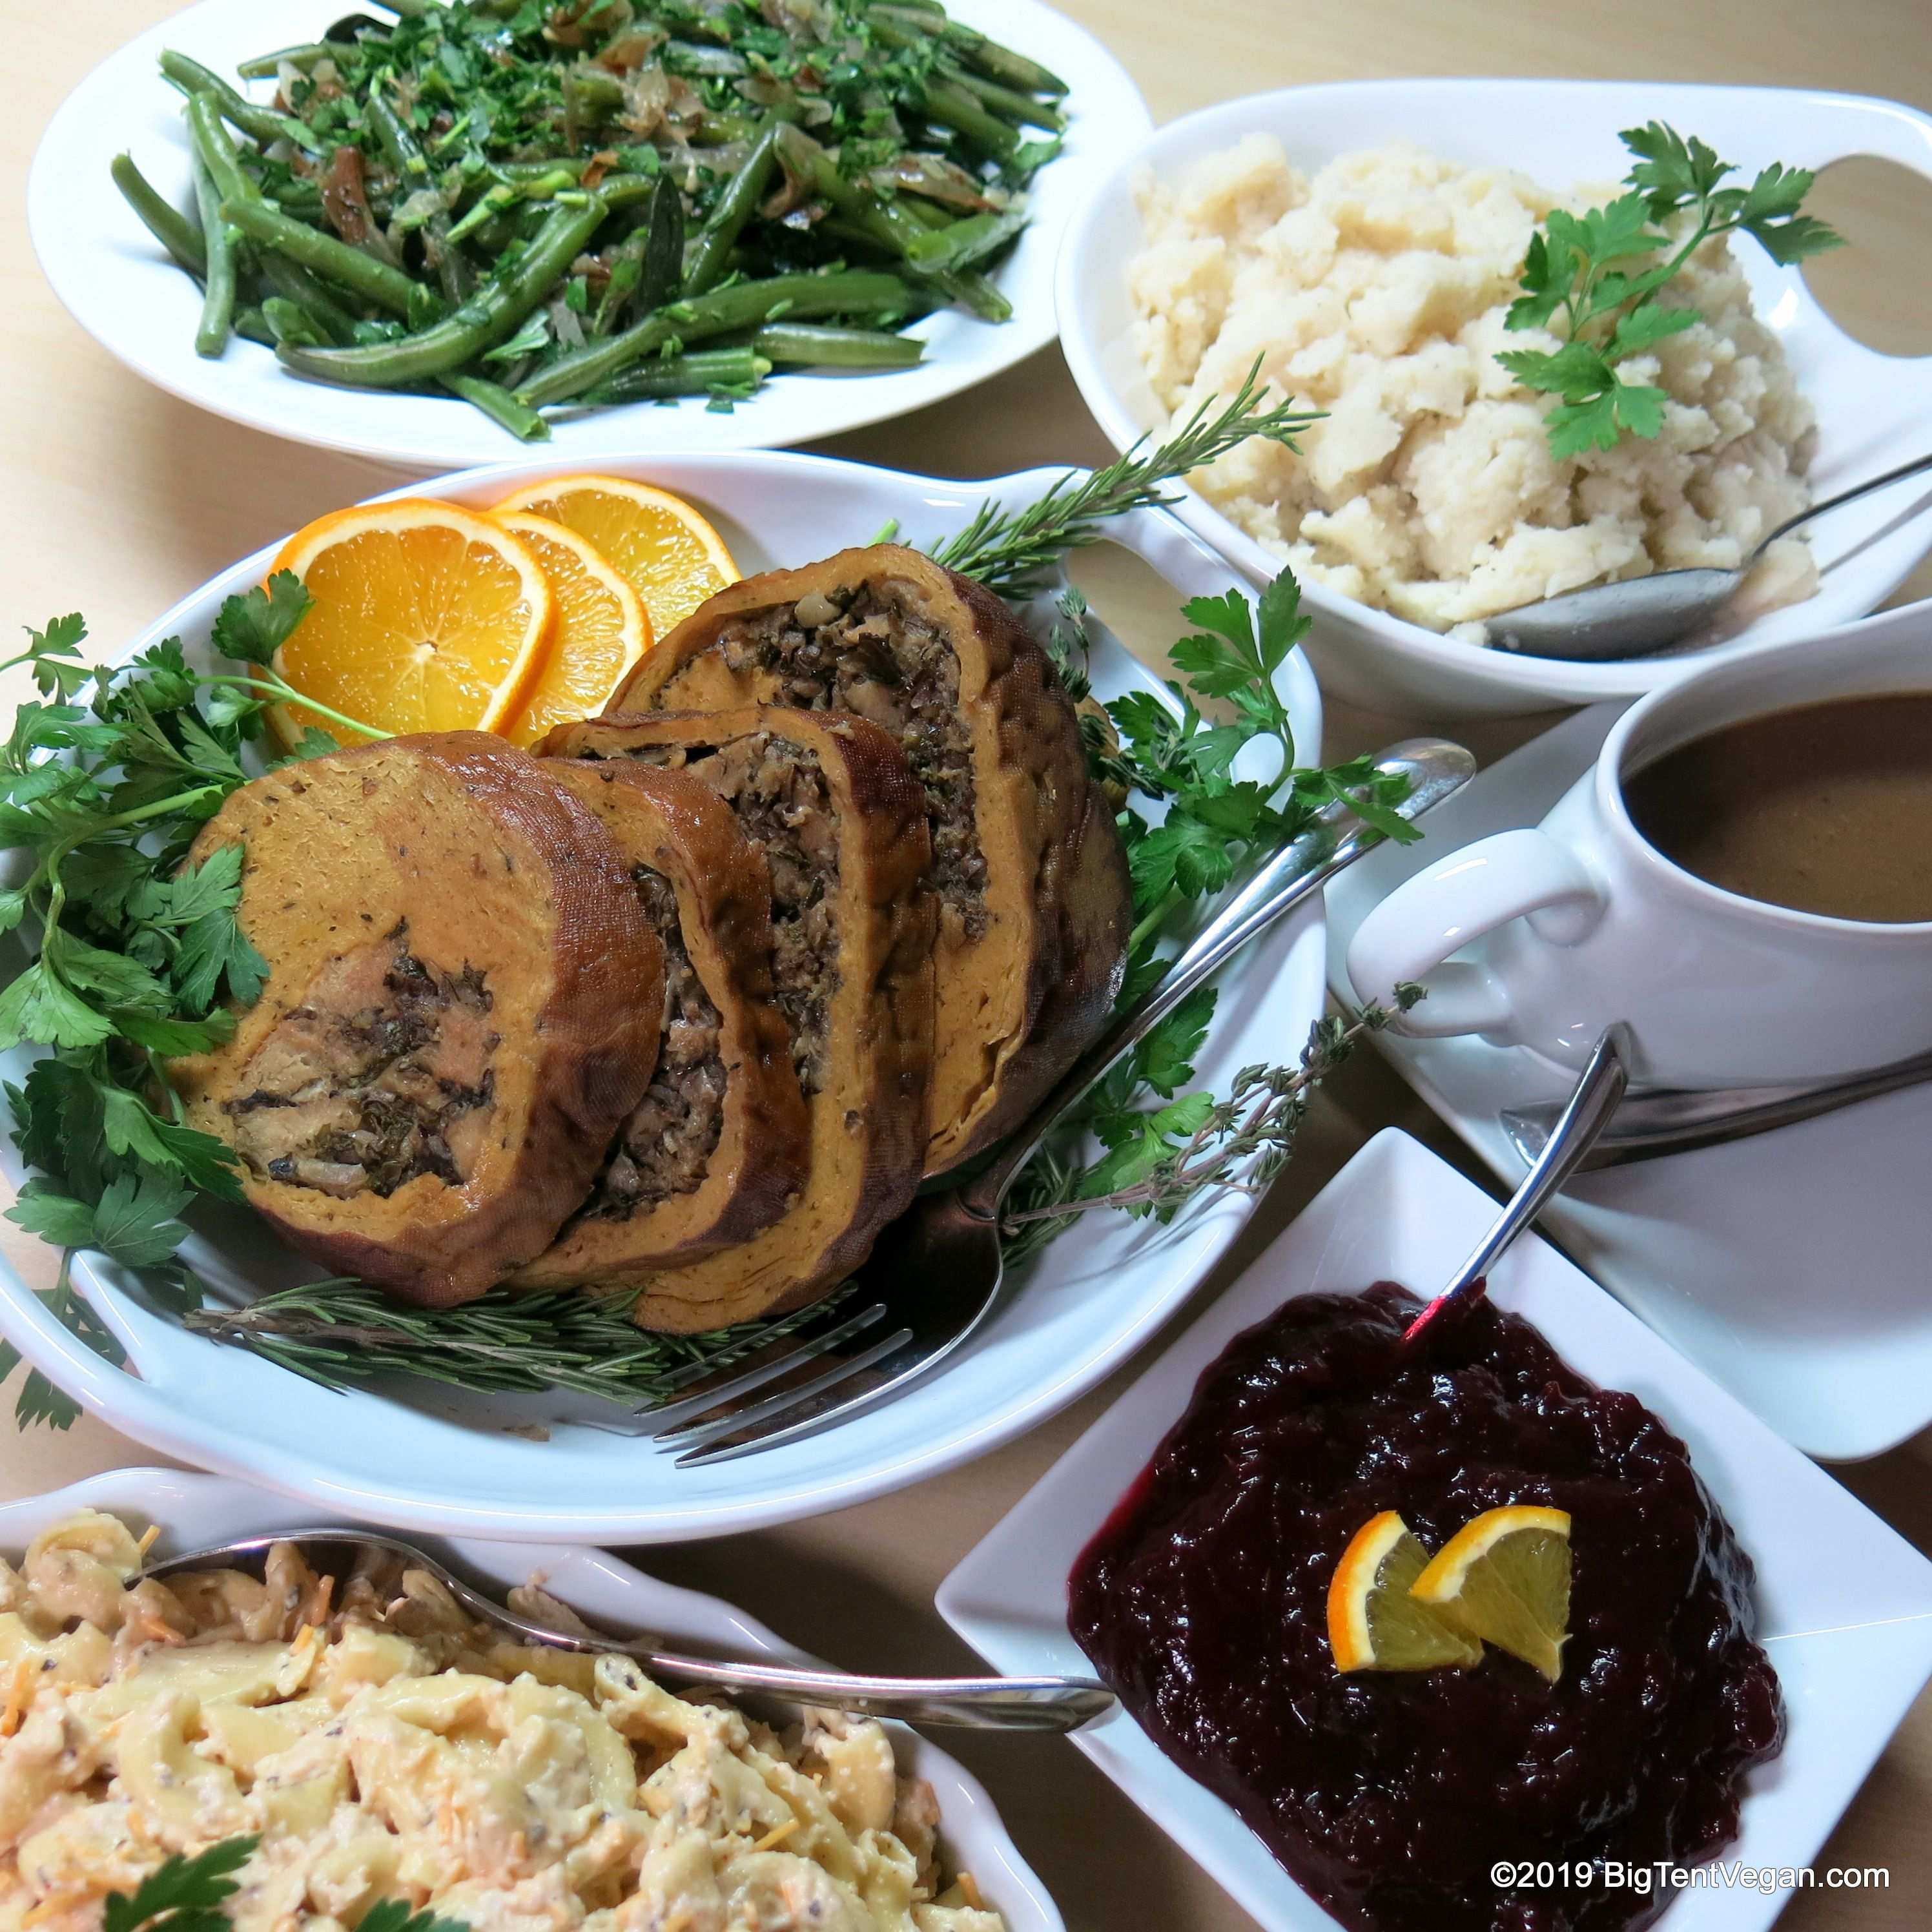 vegan Holiday Meal for 4 from wholefoods (Laguna Niguel